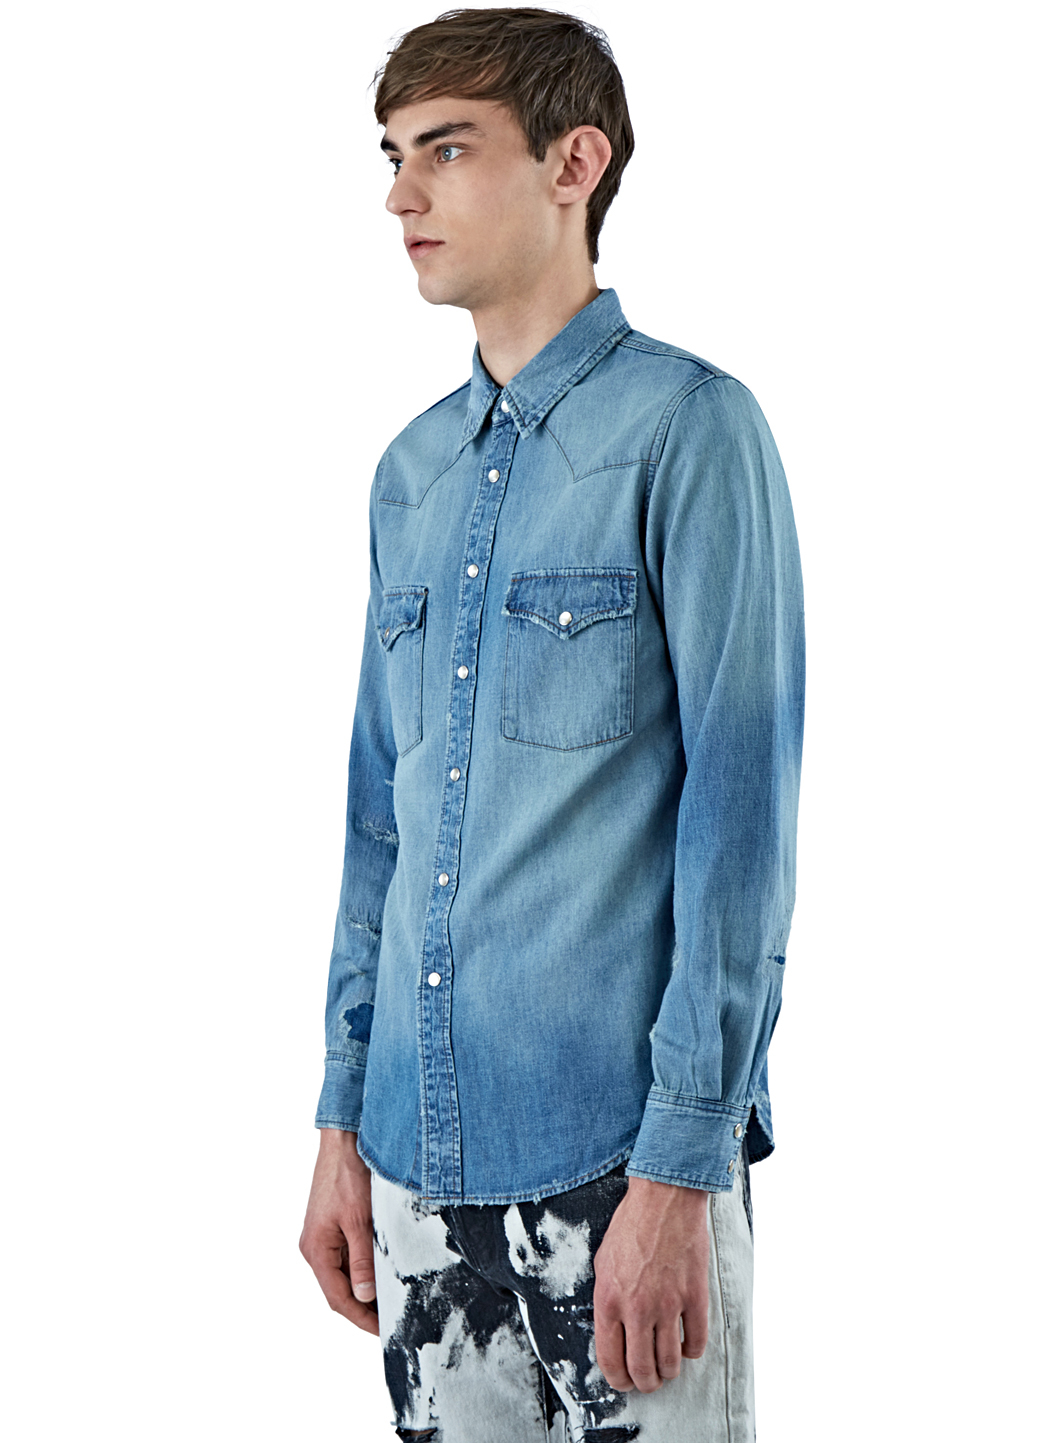 Joe Cotton Ford >> Saint Laurent Men's Oversized Western Denim Shirt In Blue in Blue for Men - Lyst